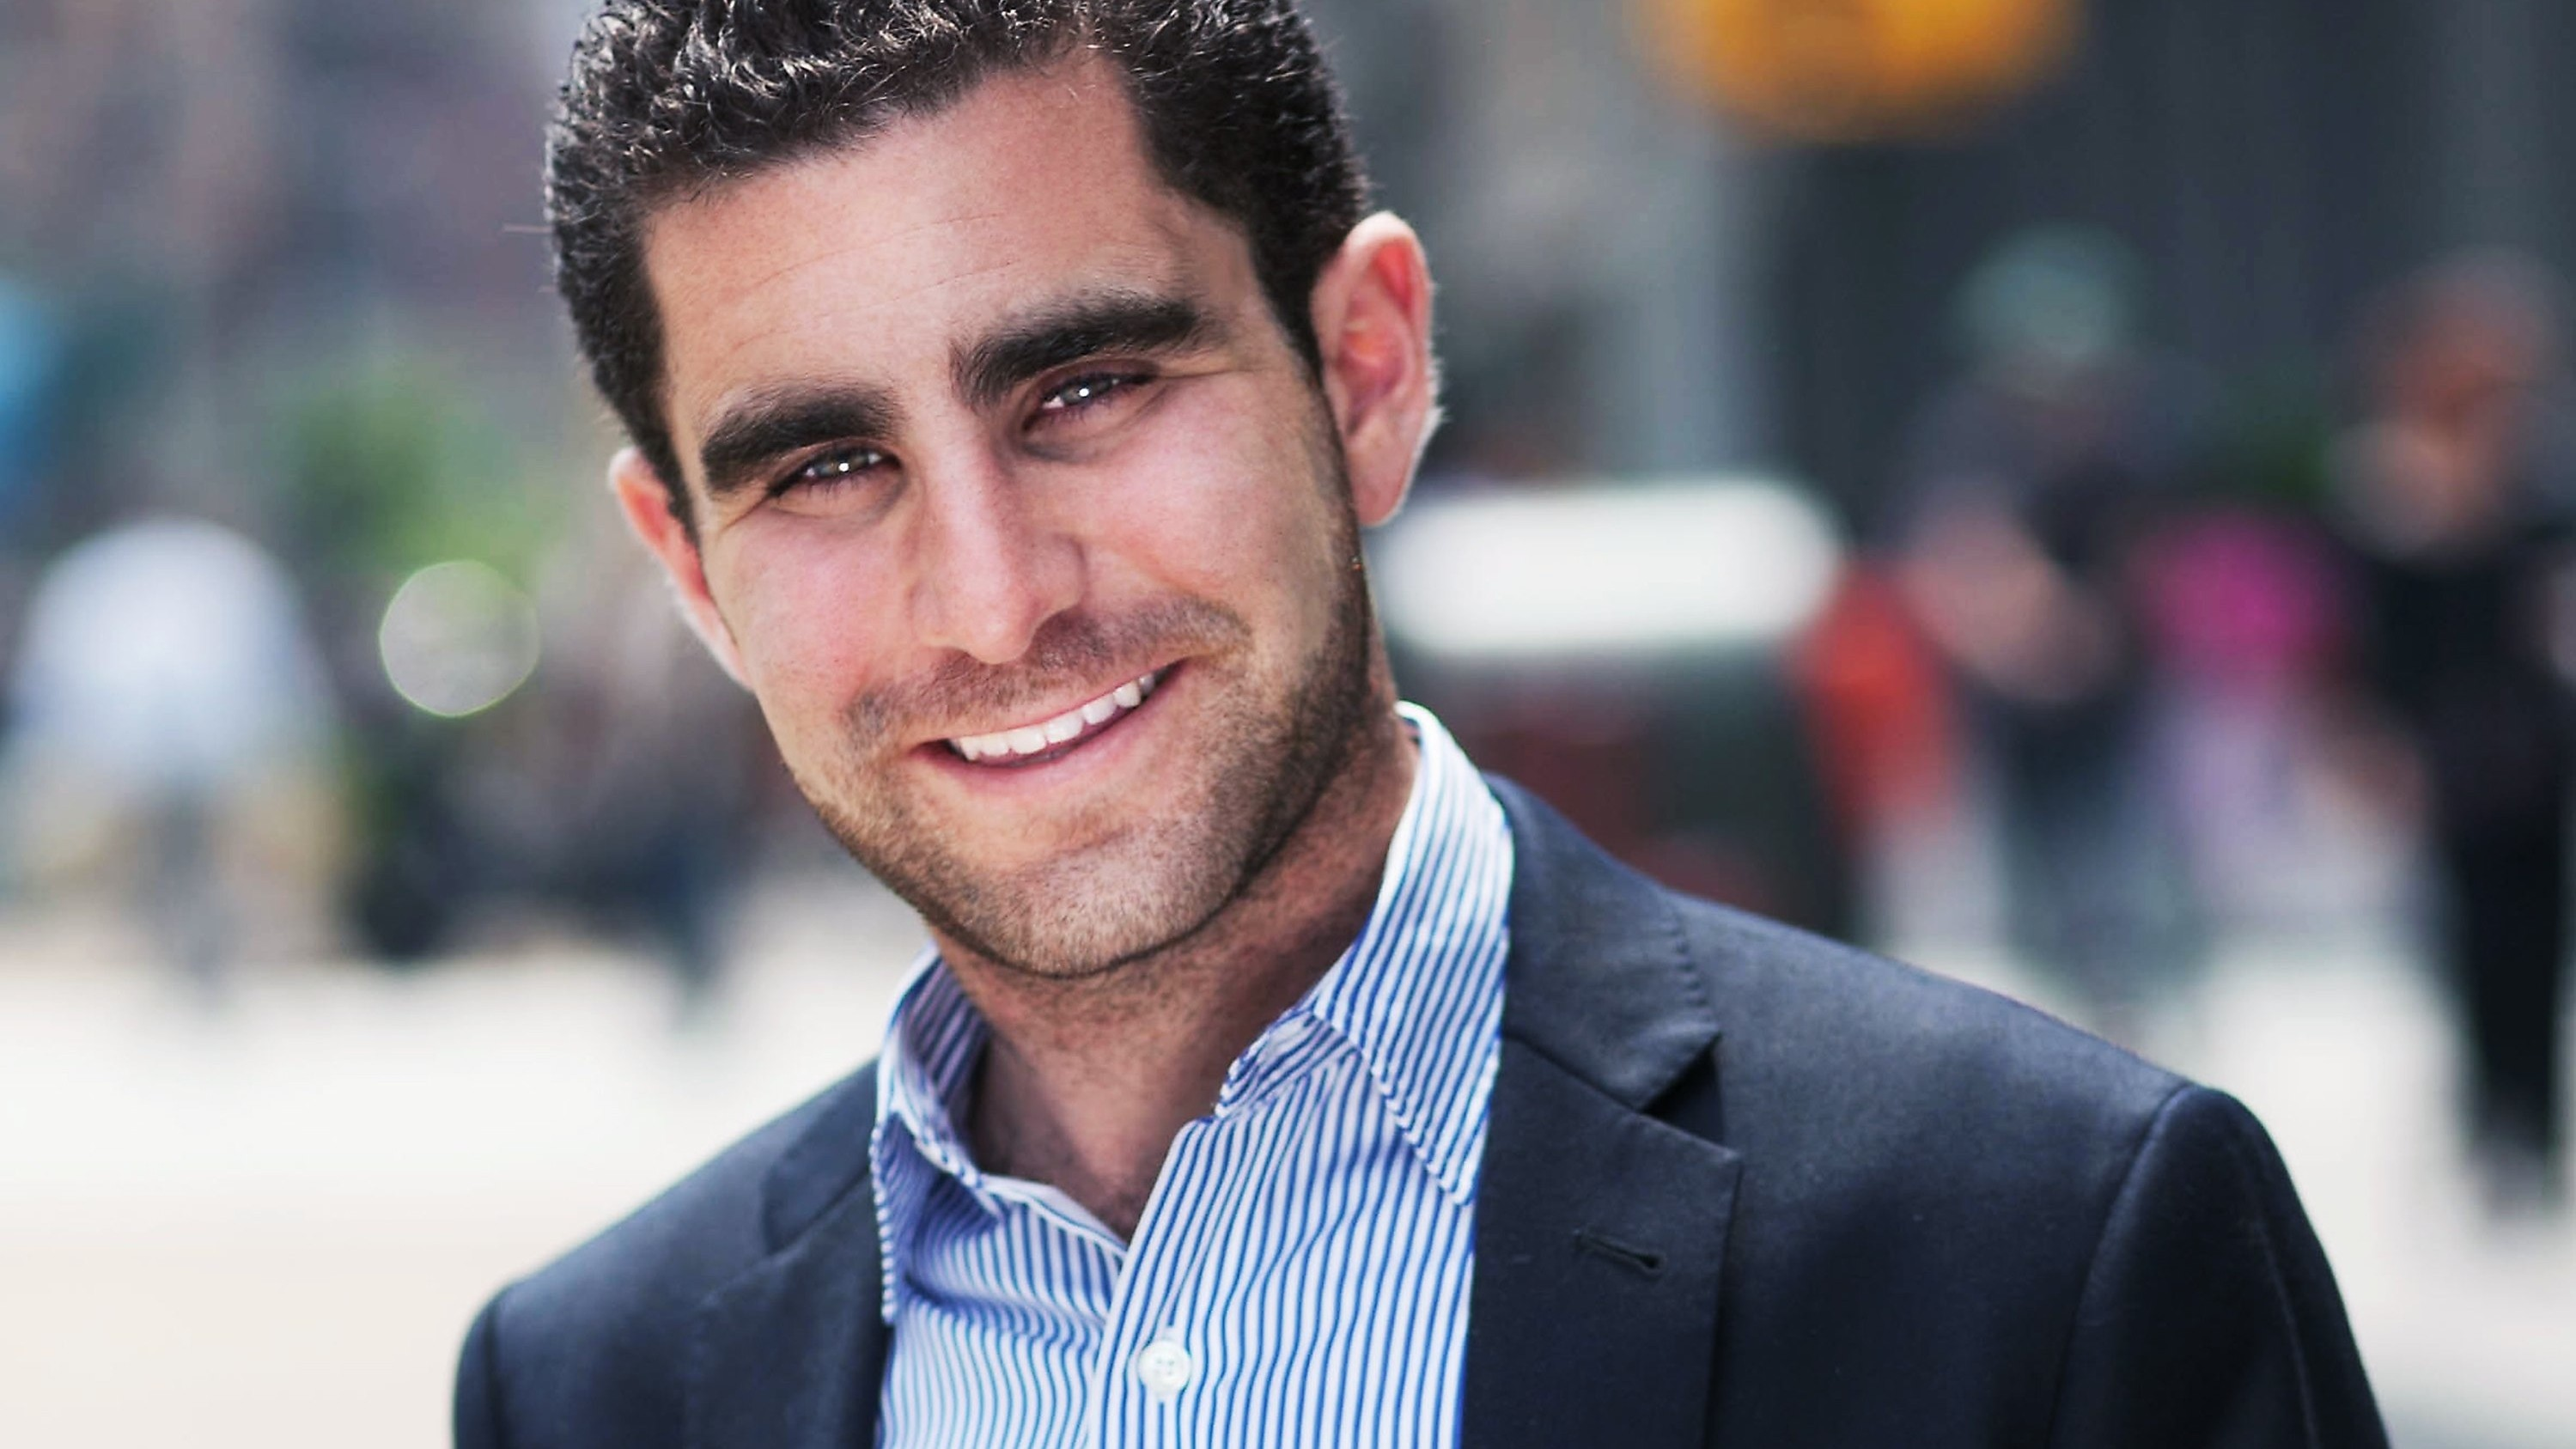 Bitcoin's Star Entrepreneur Was Arrested by the Feds for Silk Road Money Laundering